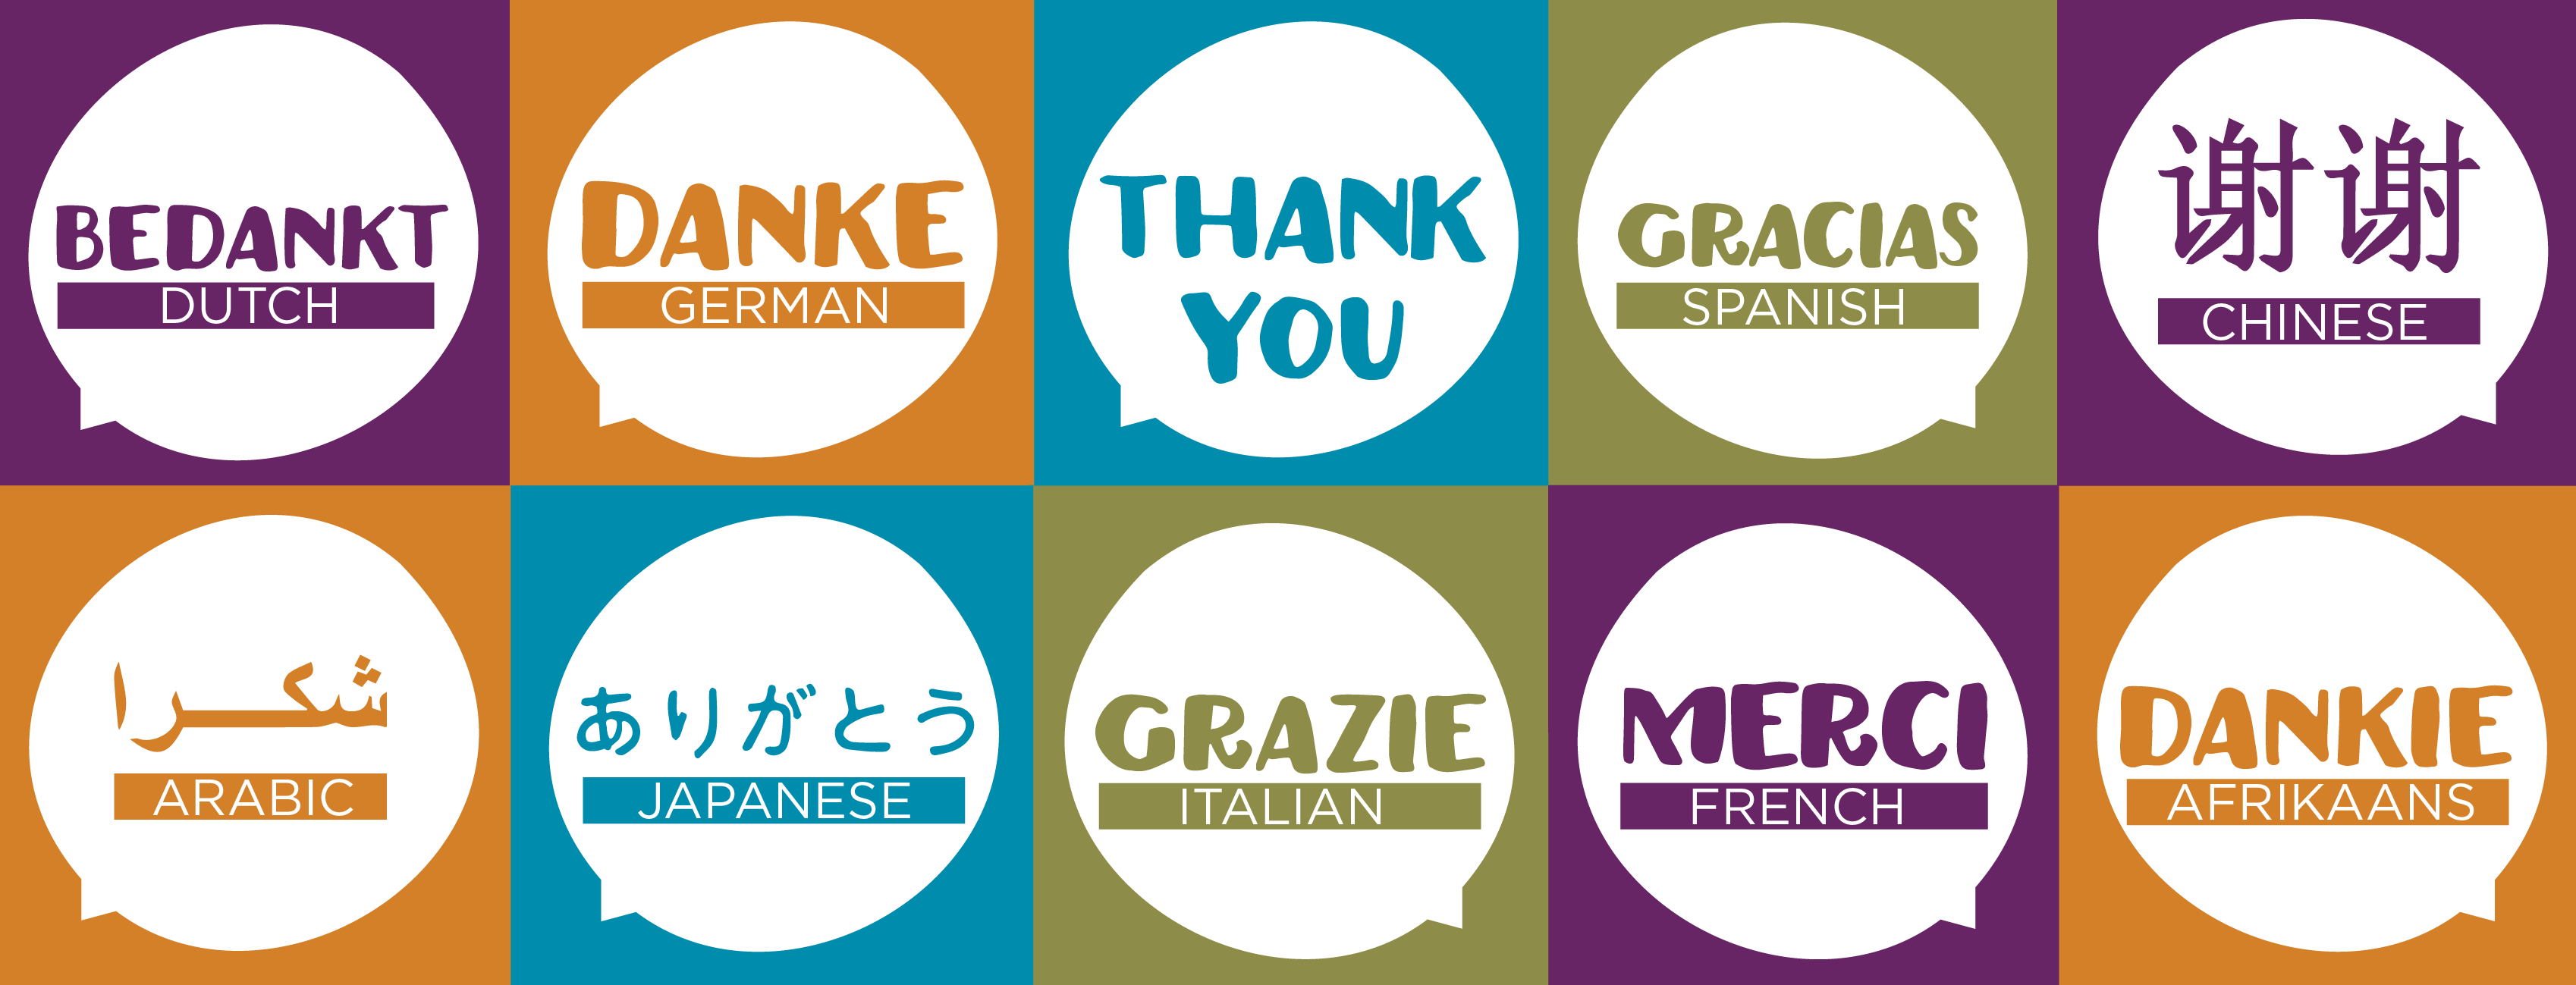 how to give thanks in languages ies abroad how to give thanks in 10 languages